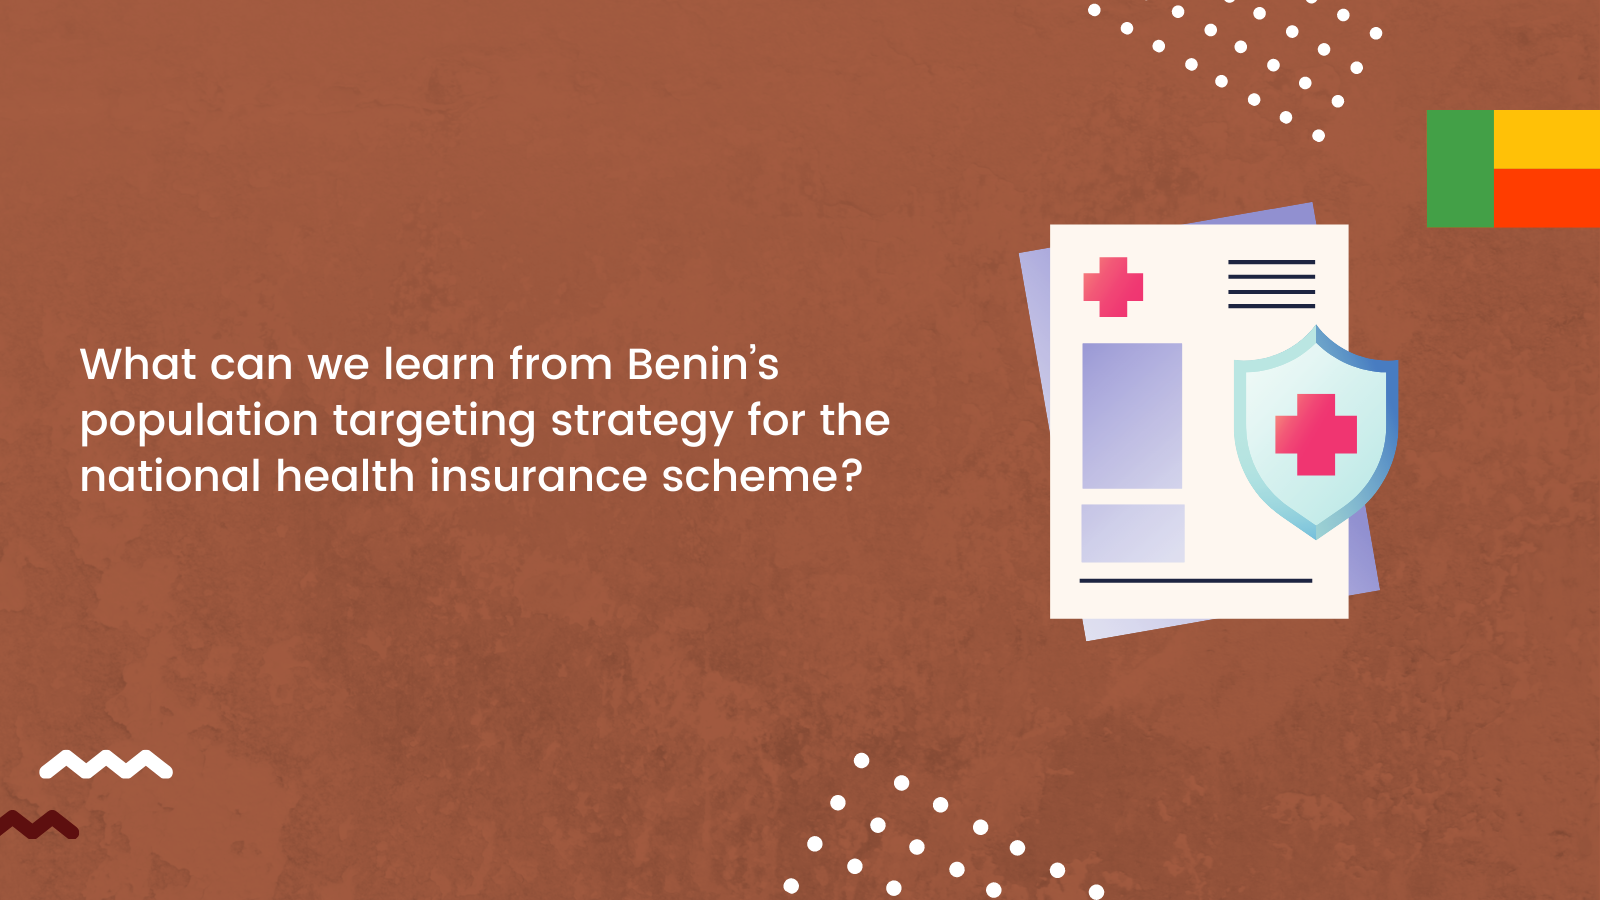 What can we learn from Benin's population targeting strategy for the national health insurance scheme?